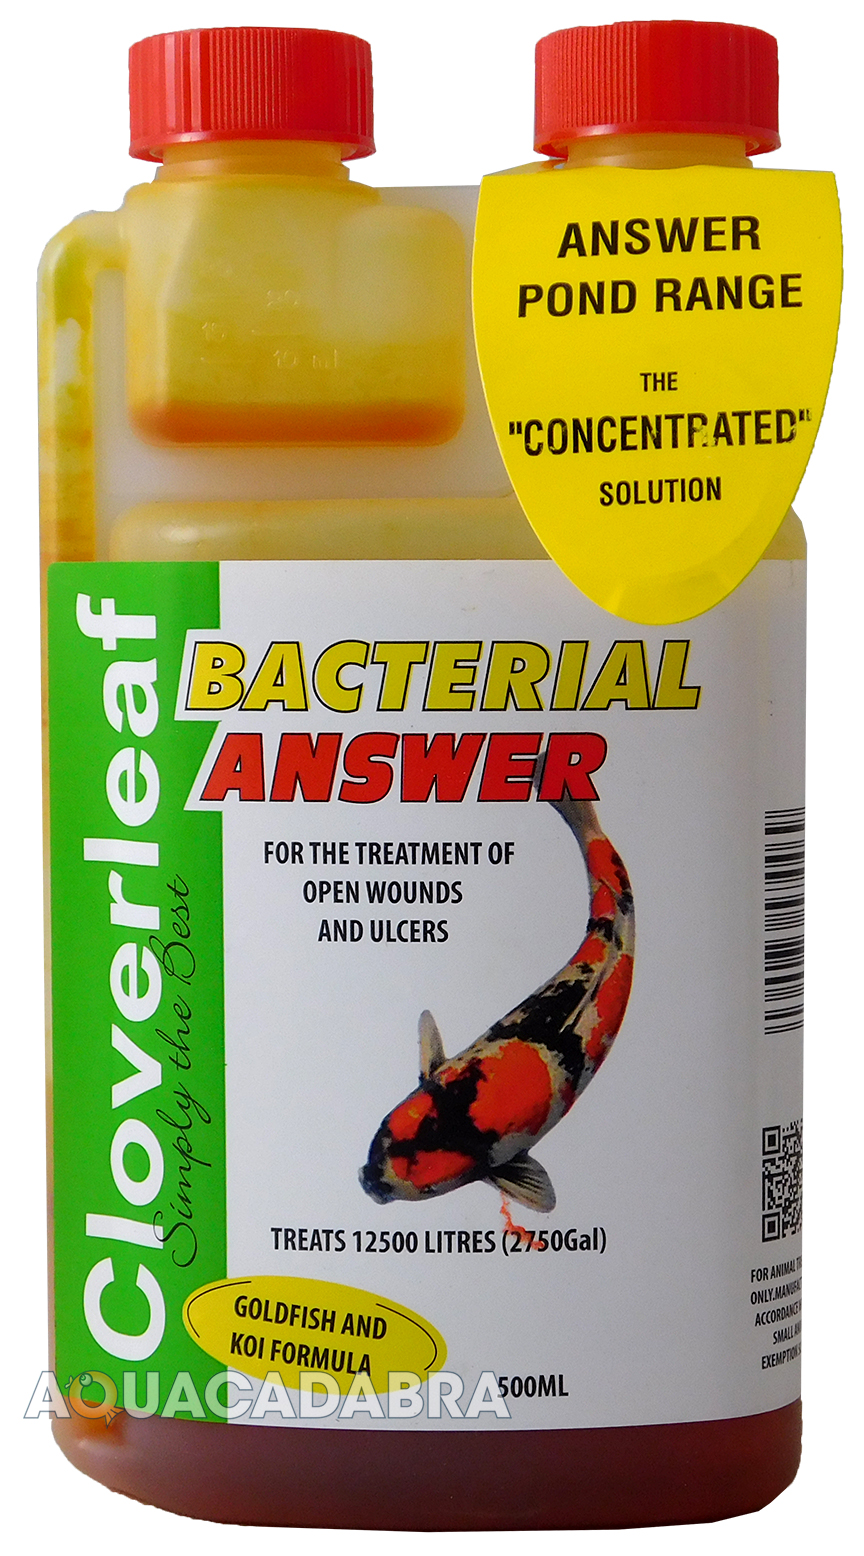 Cloverleaf bacterial answer koi goldfish wounds ulcer for Koi pond treatment